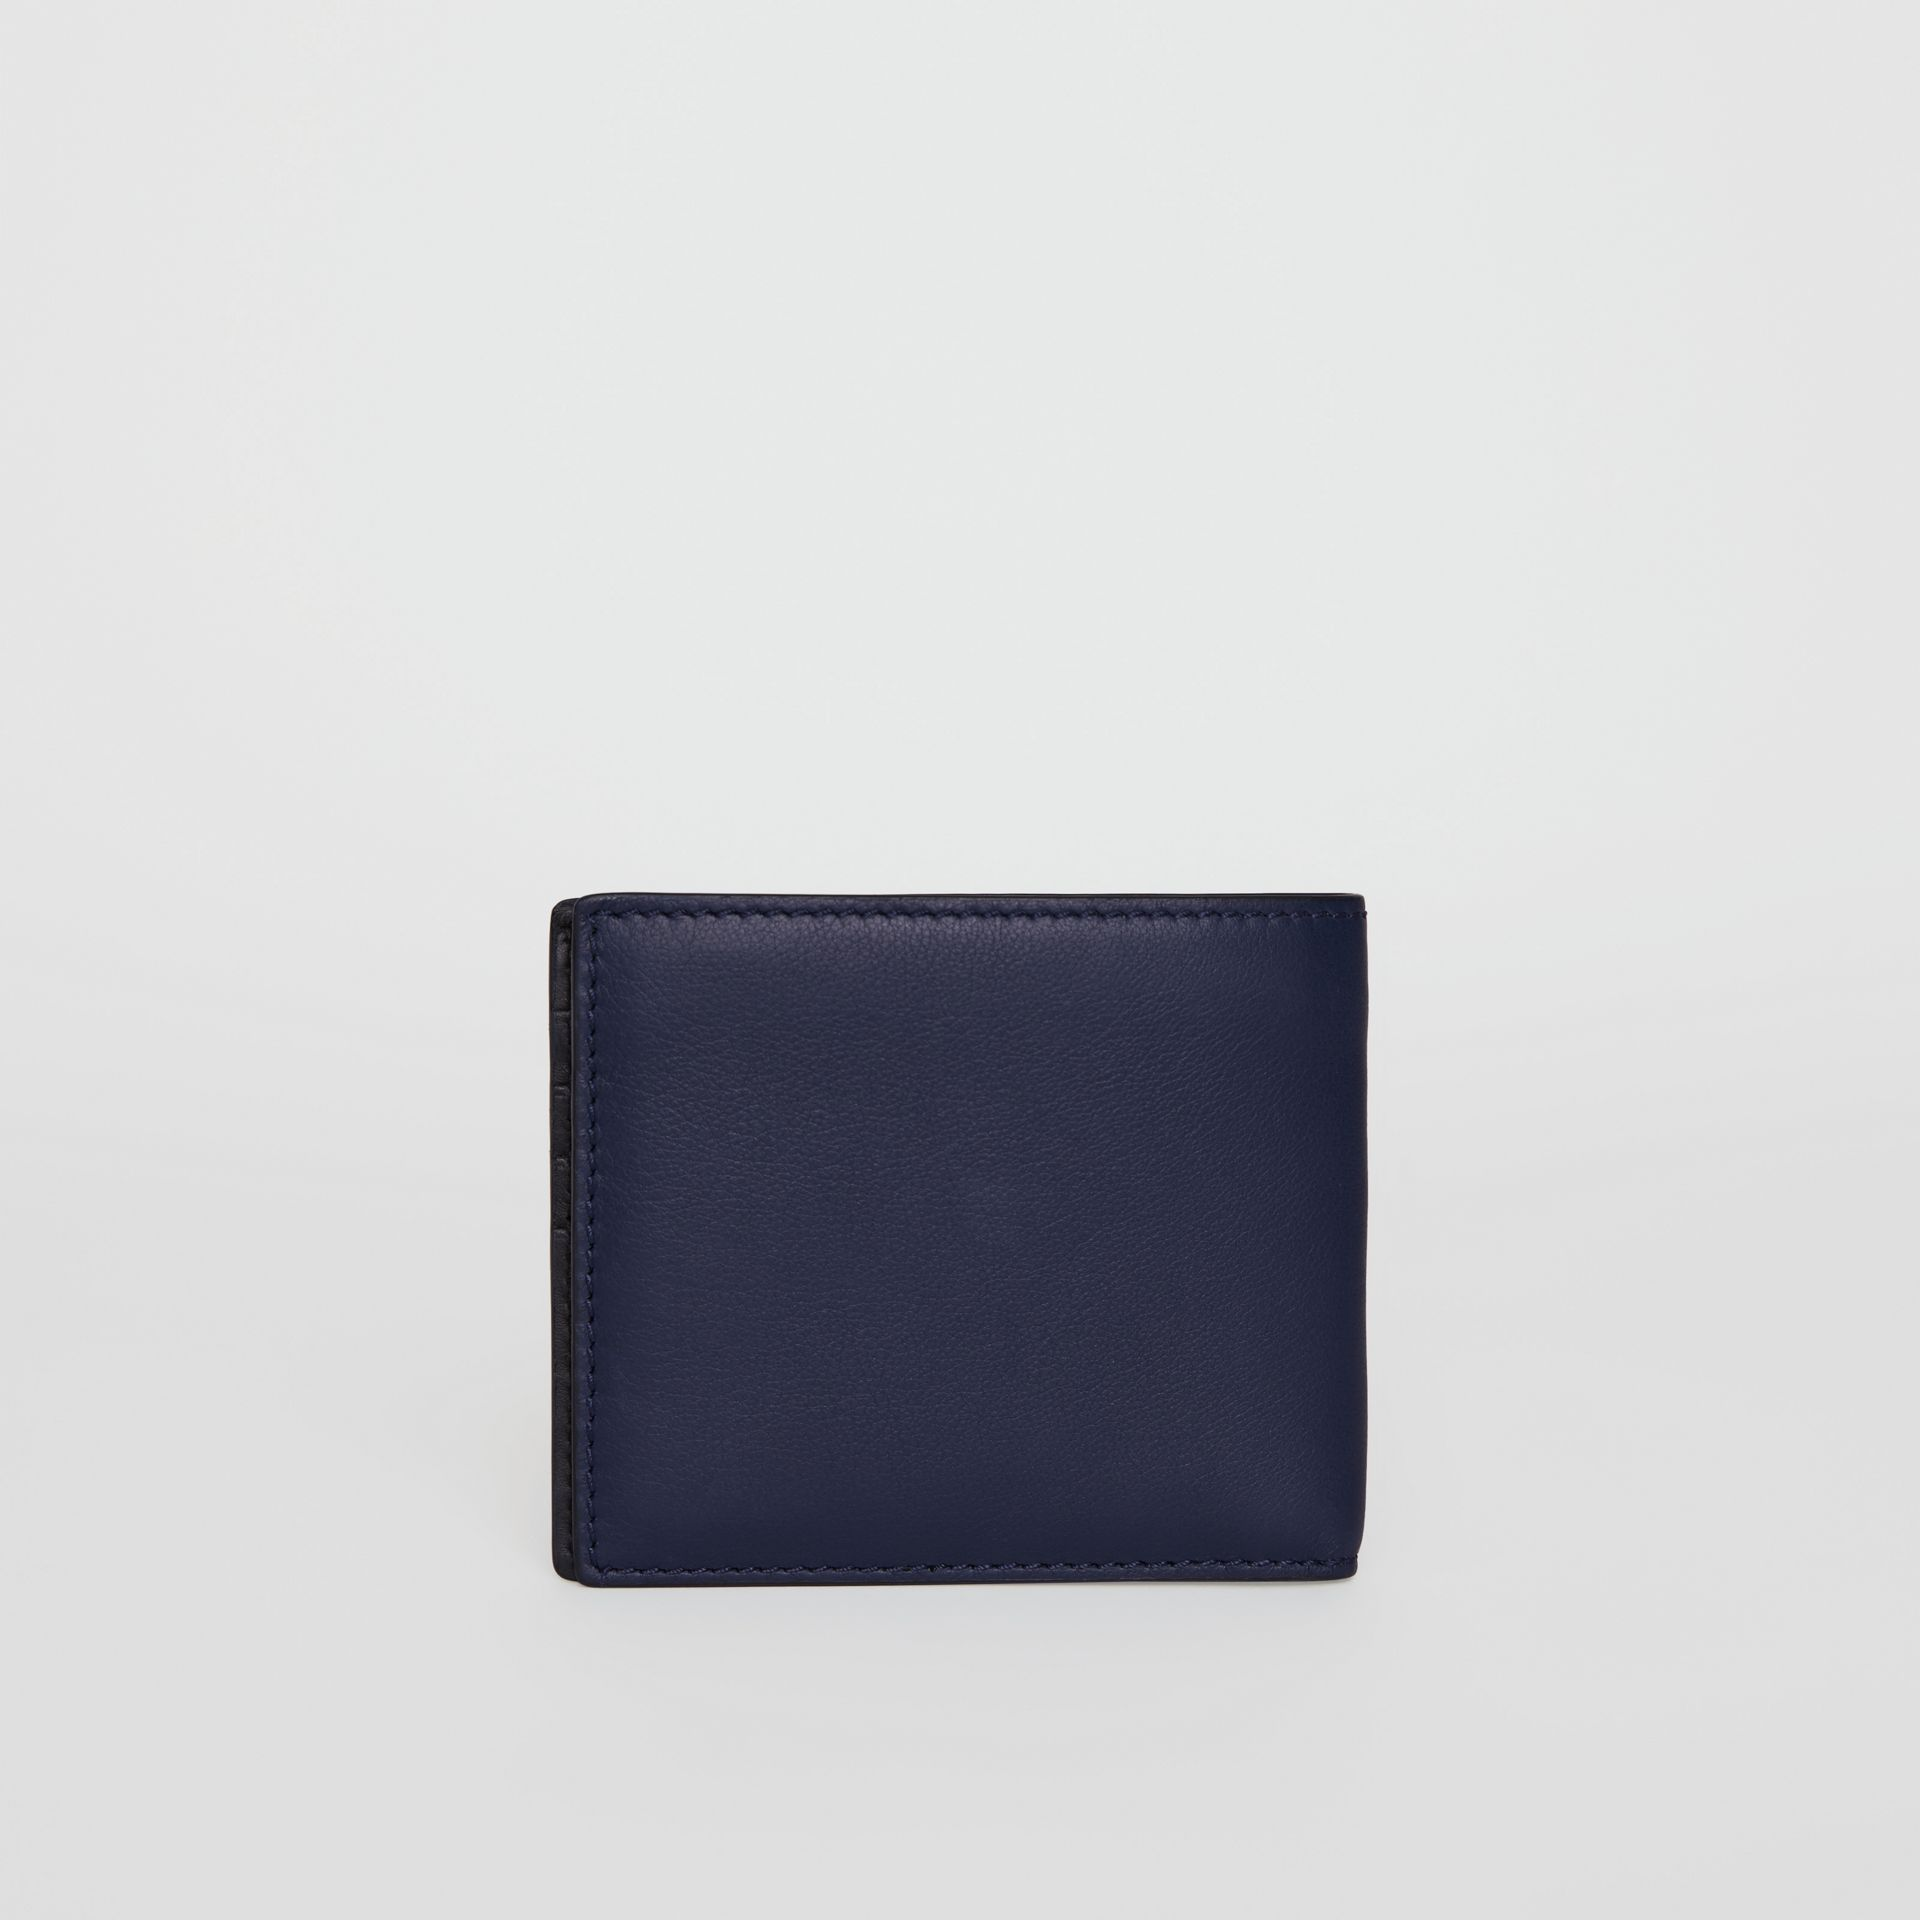 Embossed Crest Leather International Bifold Wallet in Regency Blue - Men | Burberry United Kingdom - gallery image 4